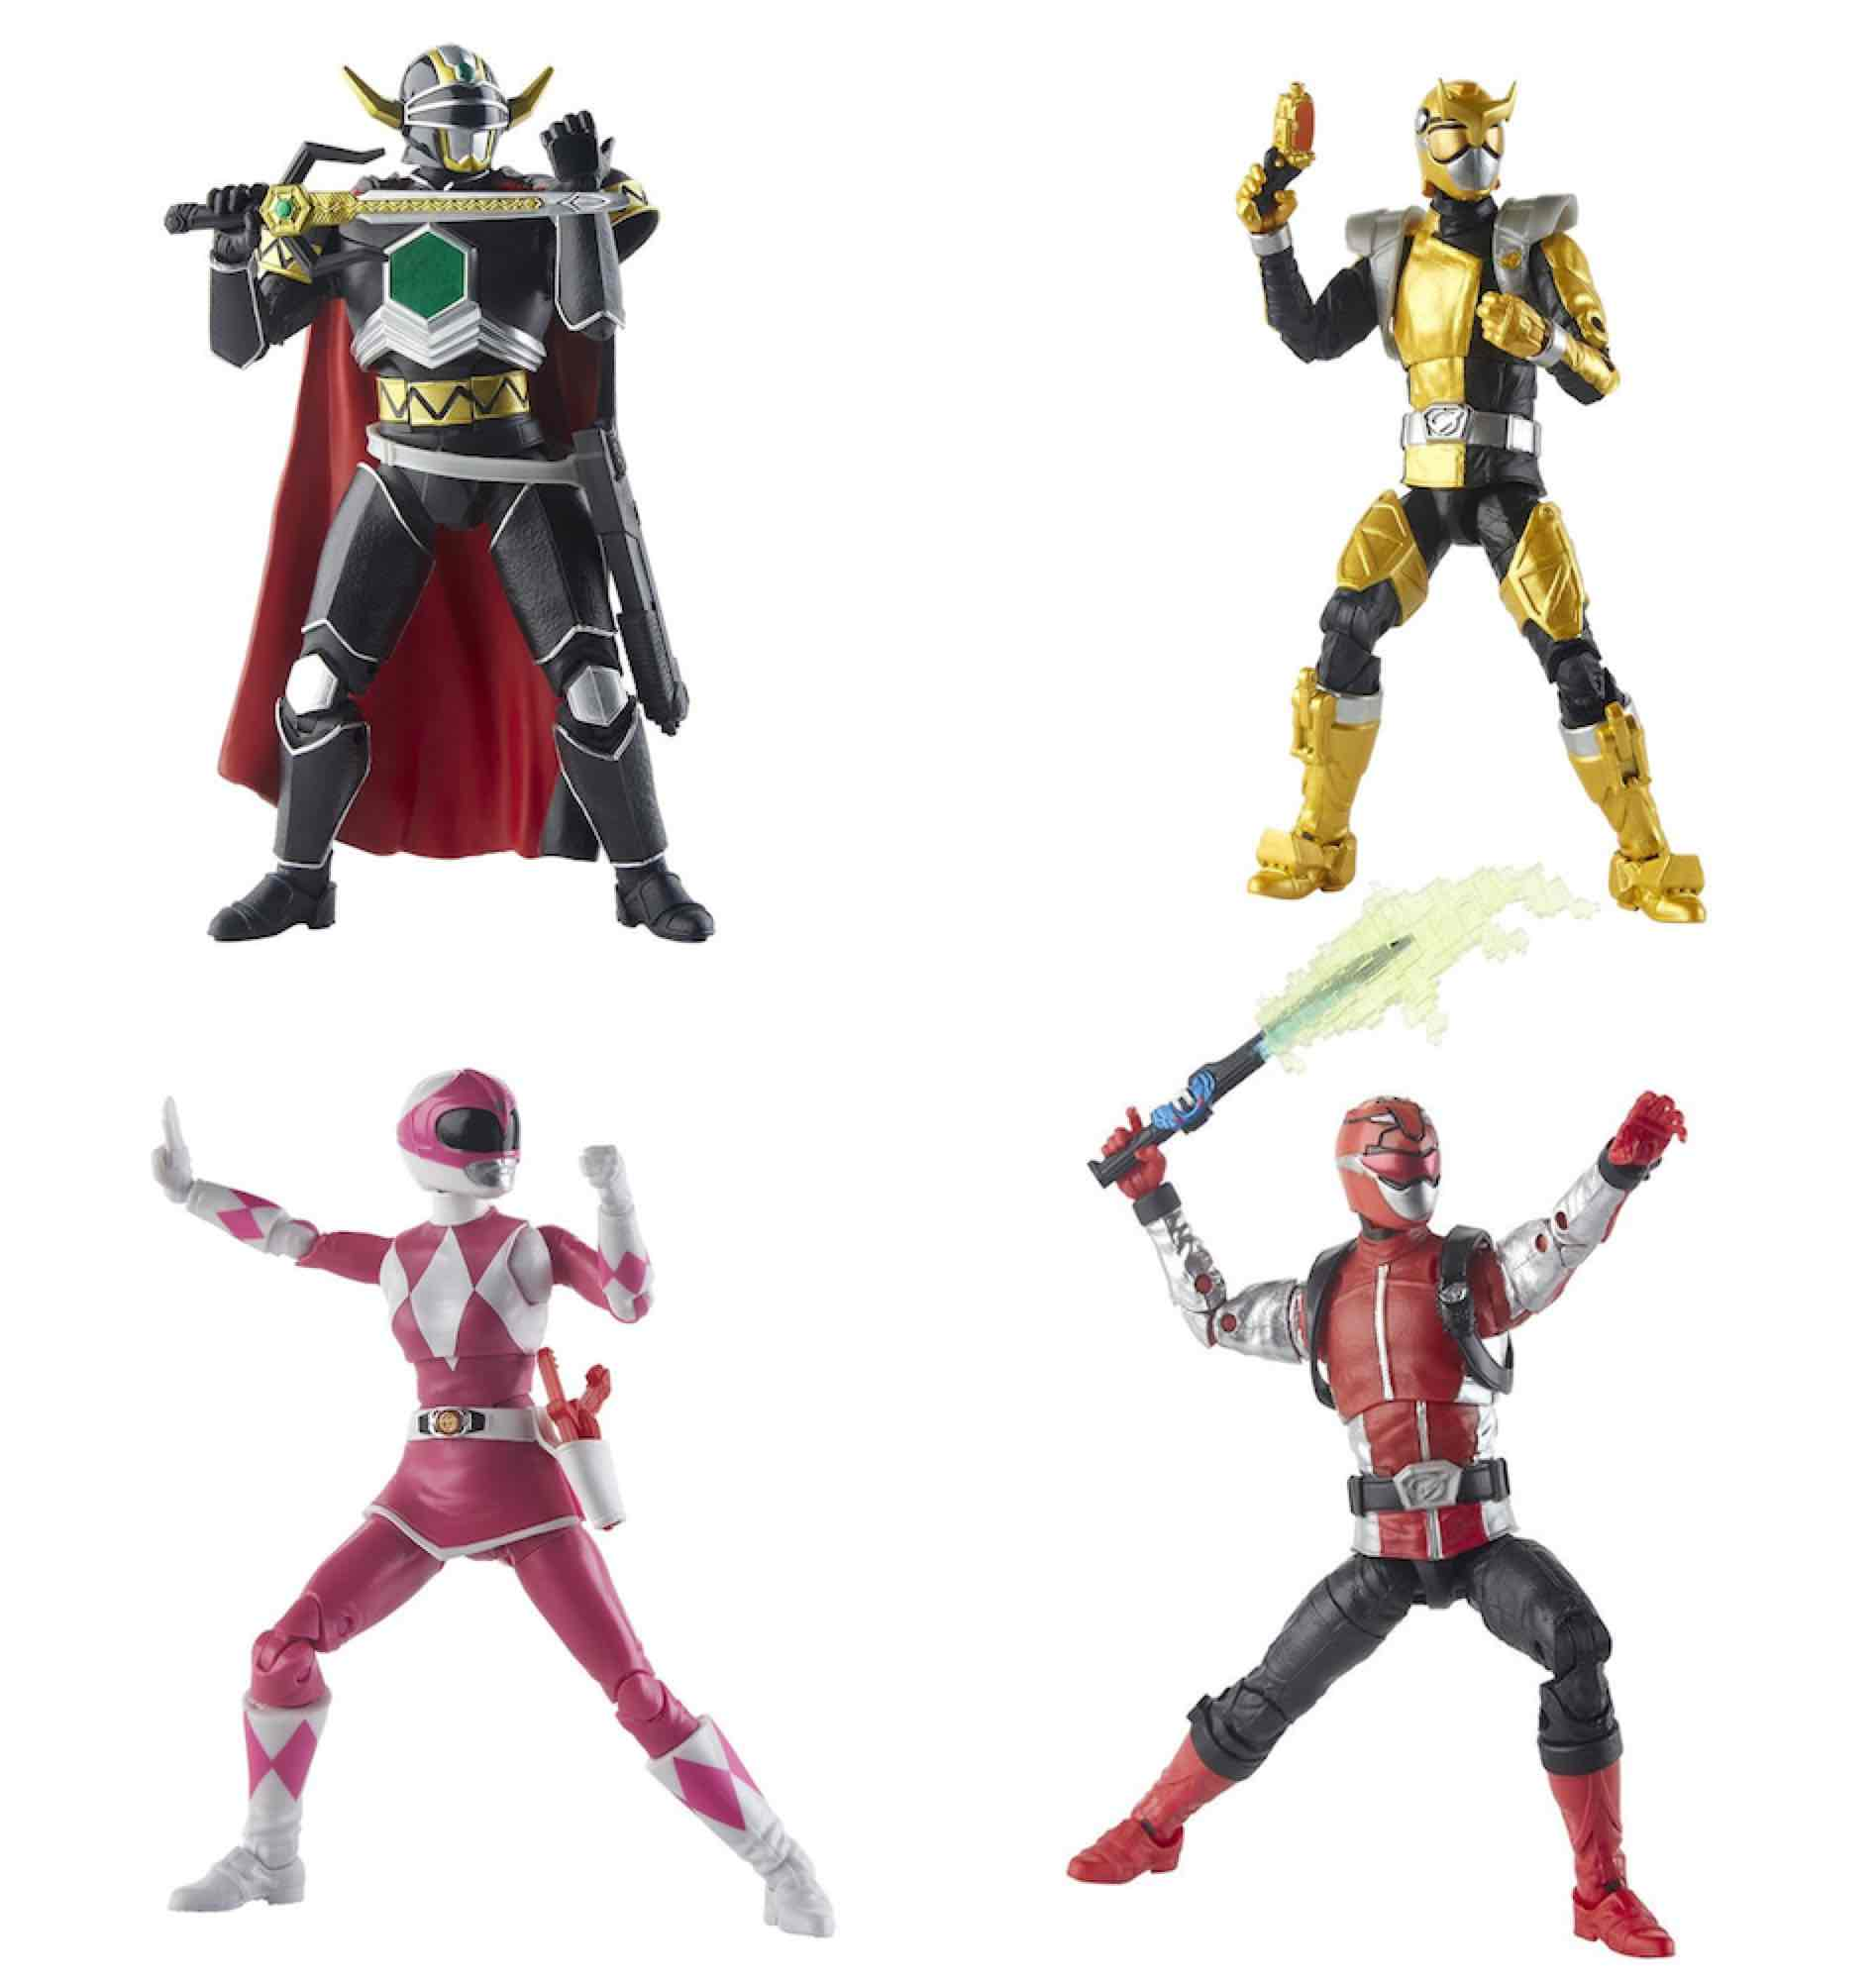 SURTIDO 8 FIGURAS 15 CM POWER RANGERS LIGHTNING COLLECTION WAVE 2 E5906